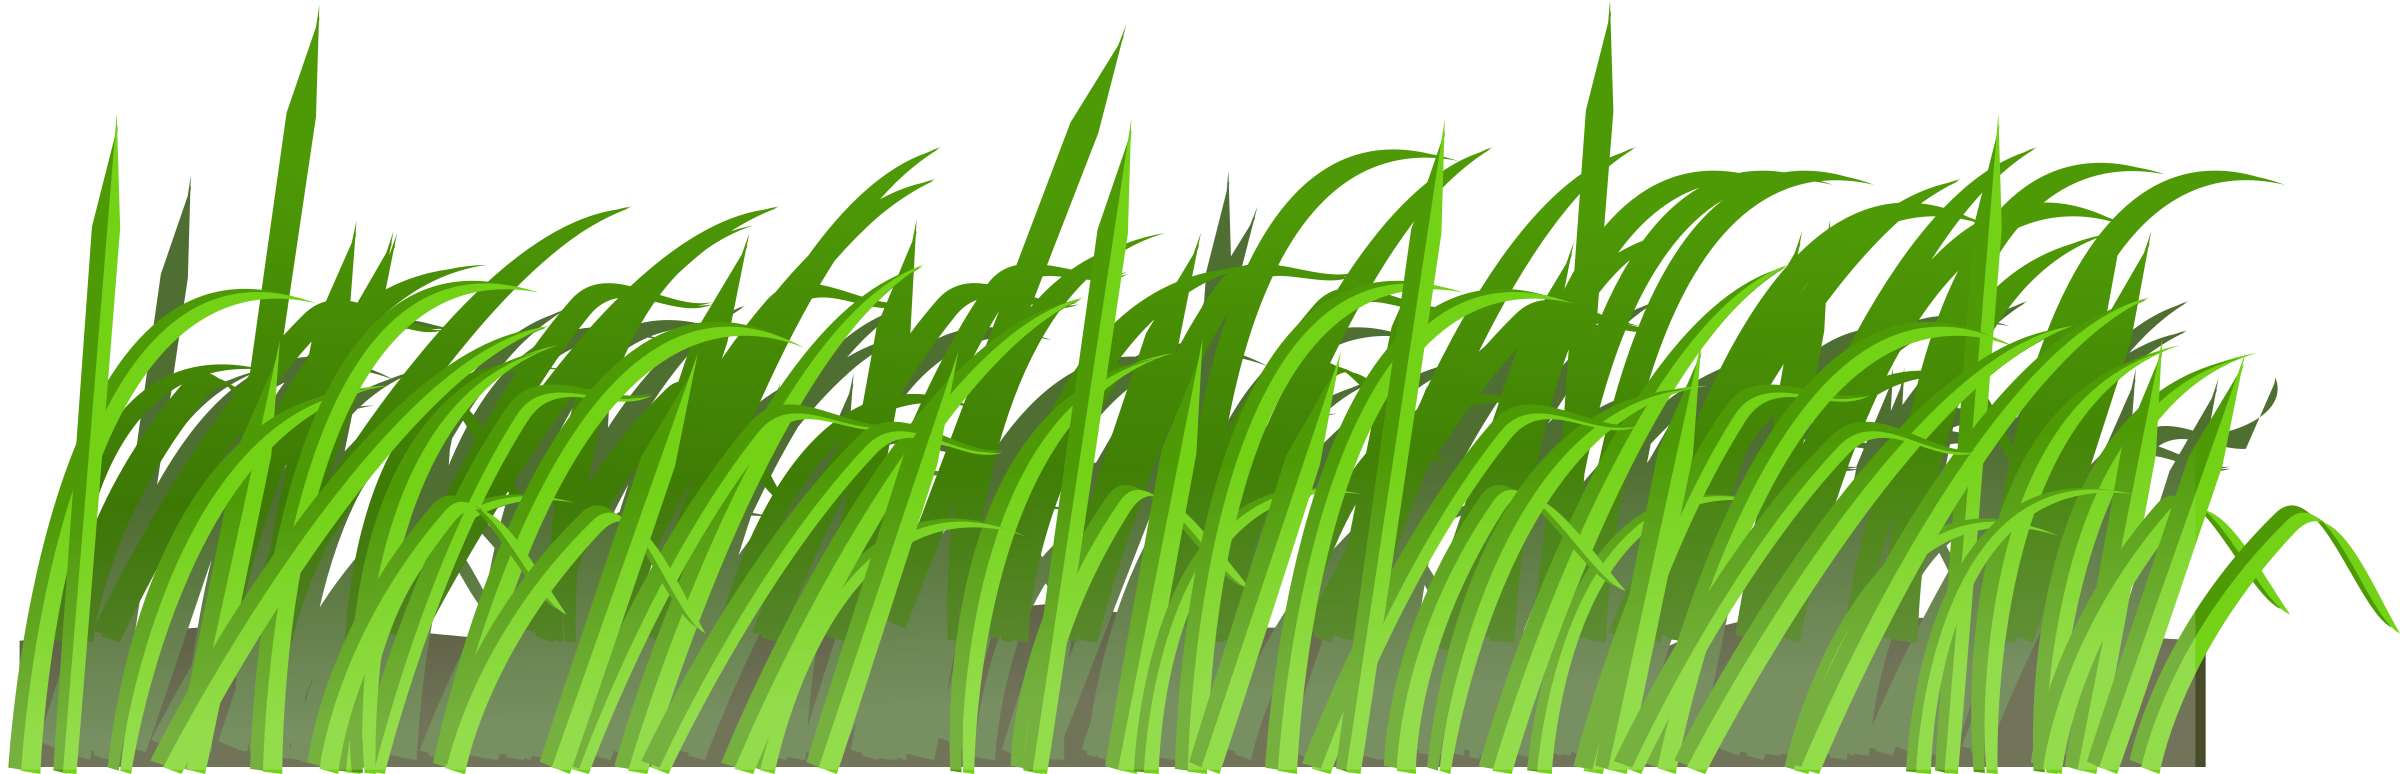 Grass Texture Transparent & PNG Clipart Free Download - YA-webdesign